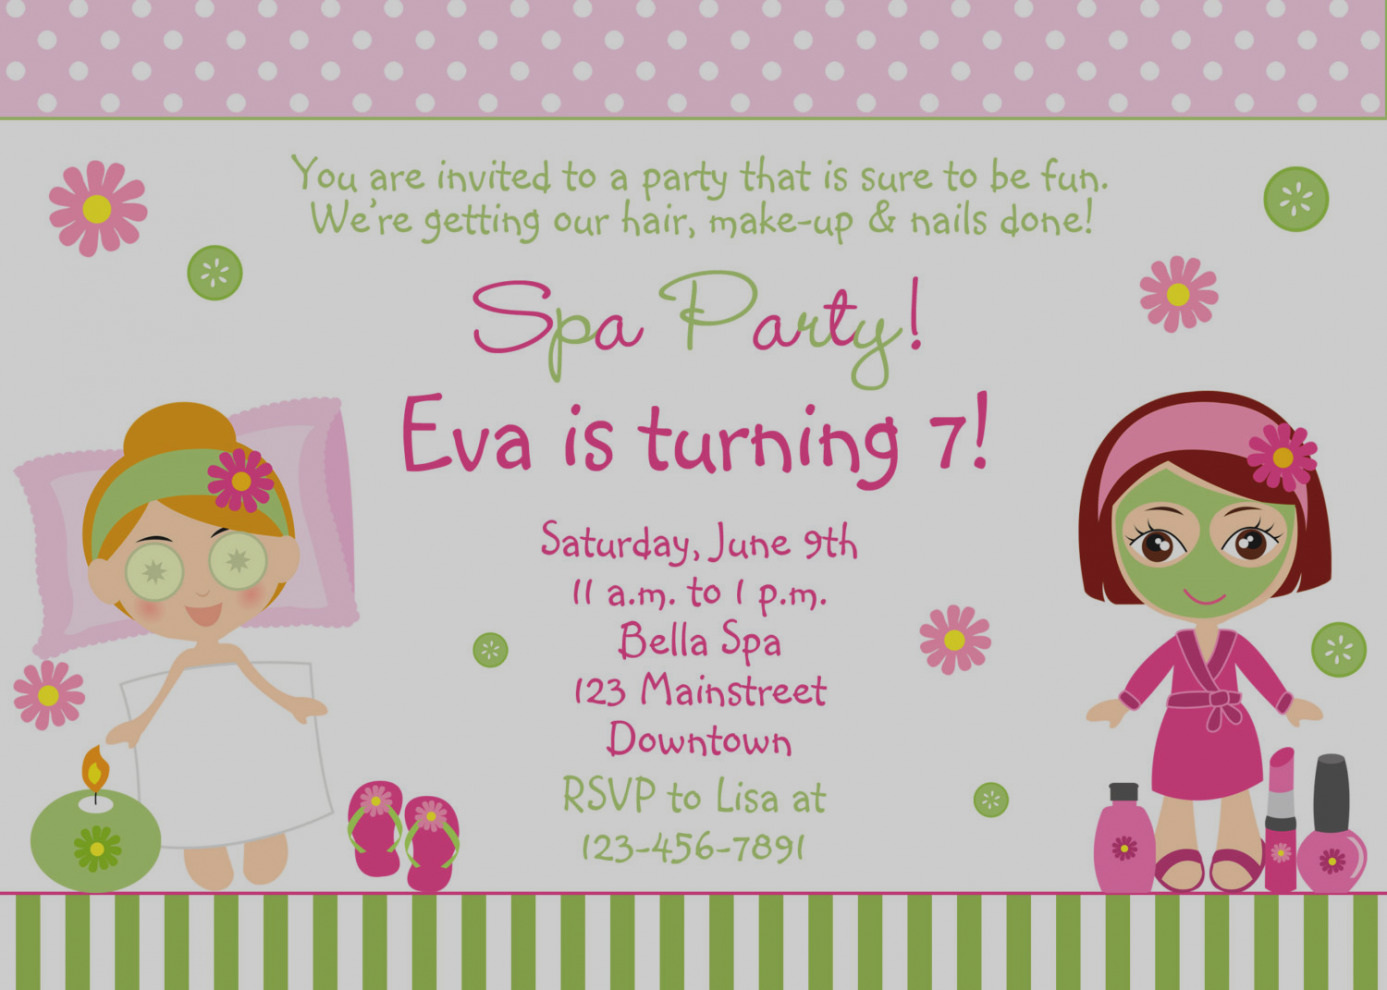 birthday day invitation cards ; new-spa-party-invitations-free-printables-girls-invitetown-b-day